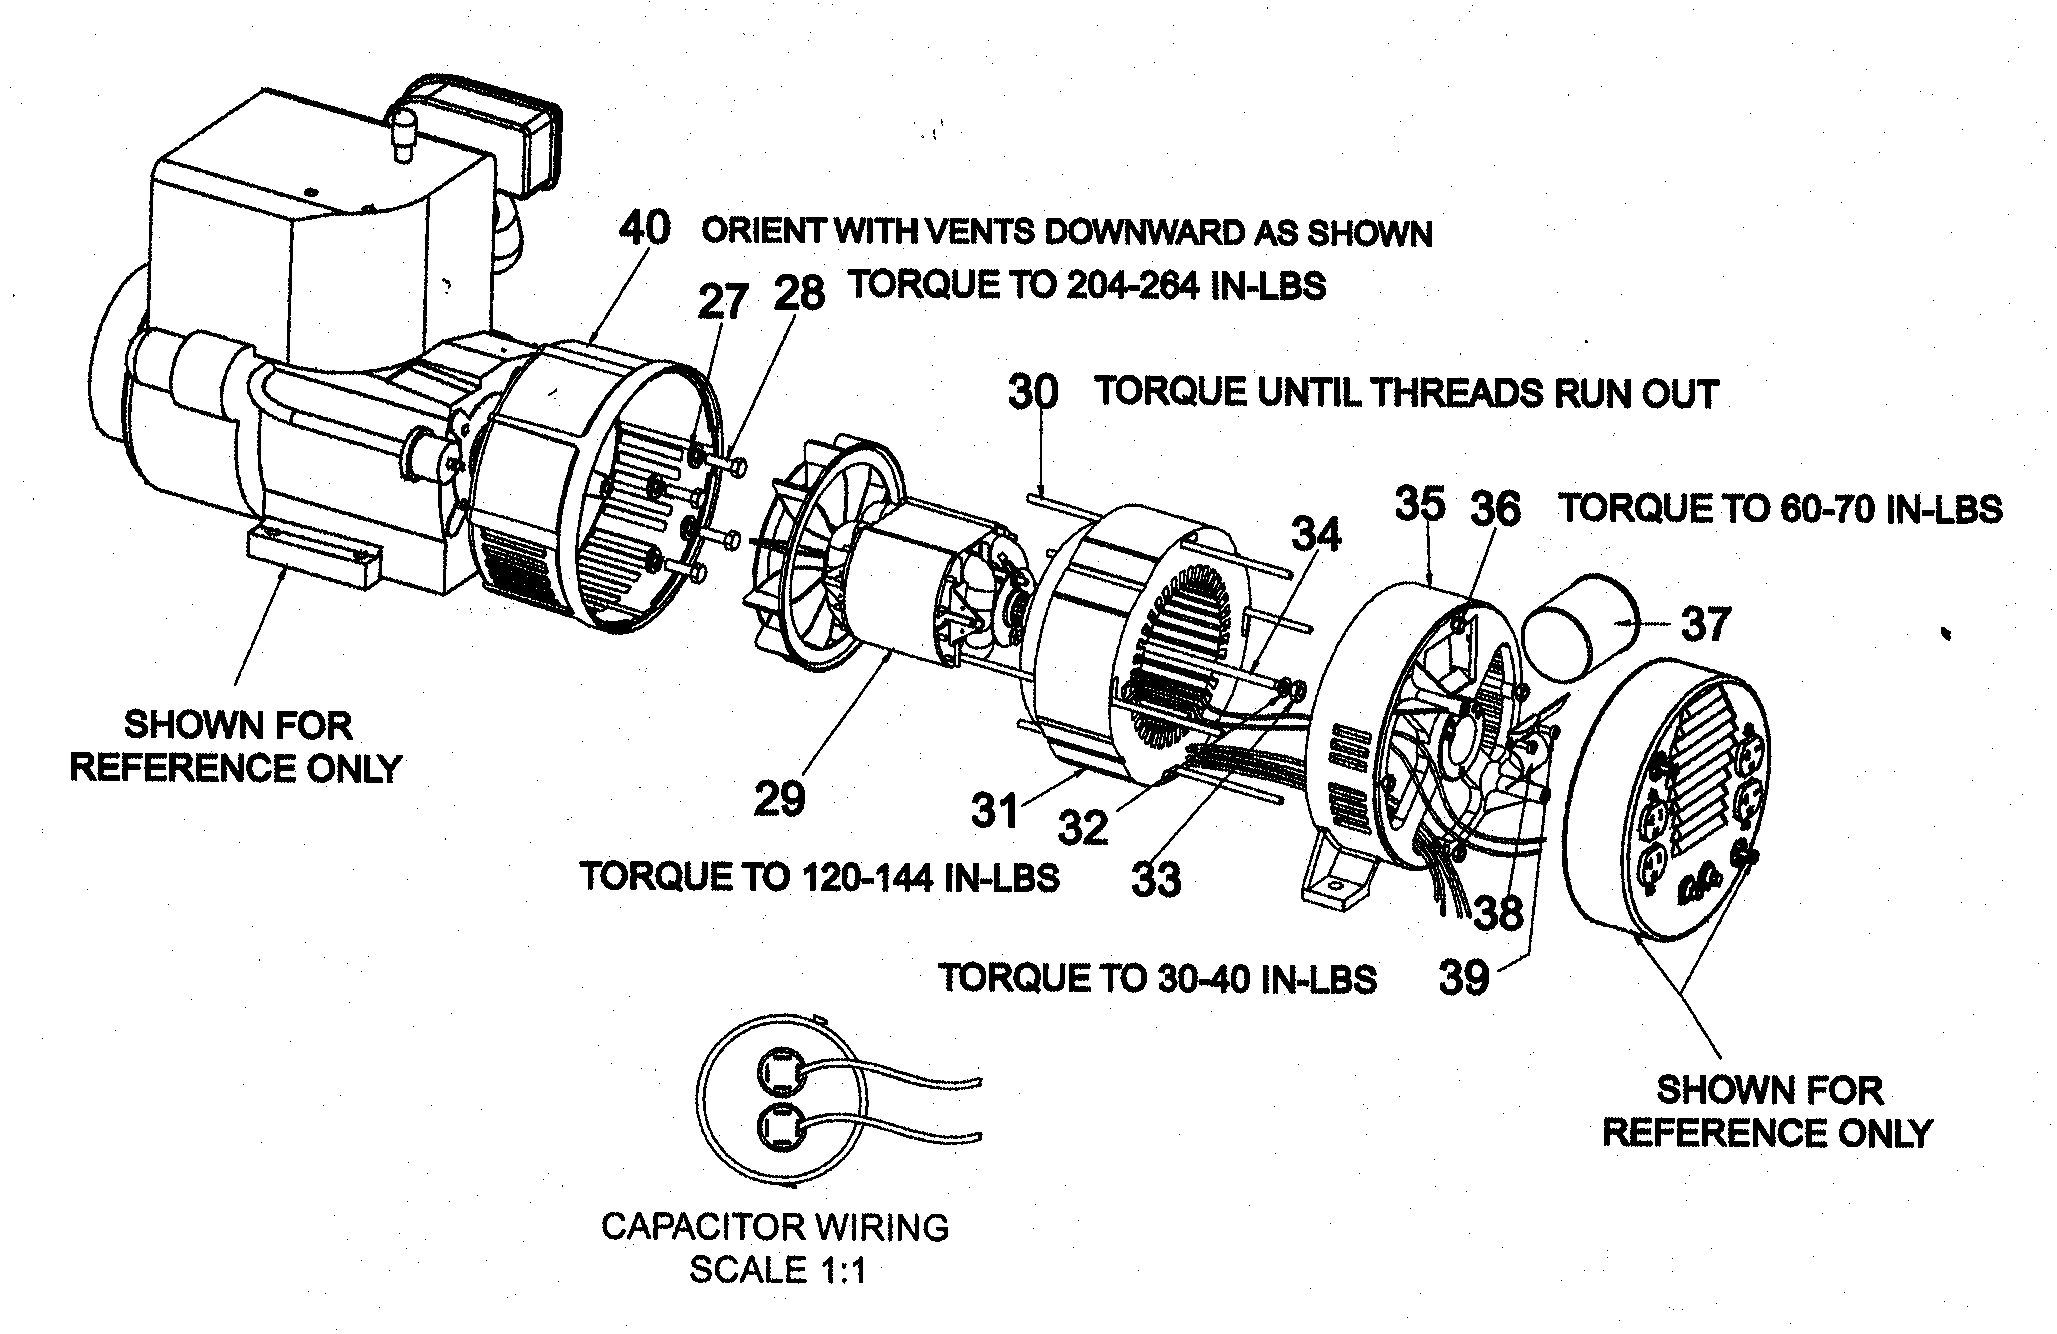 ENGINE ASSY Diagram & Parts List for Model gbfe60101